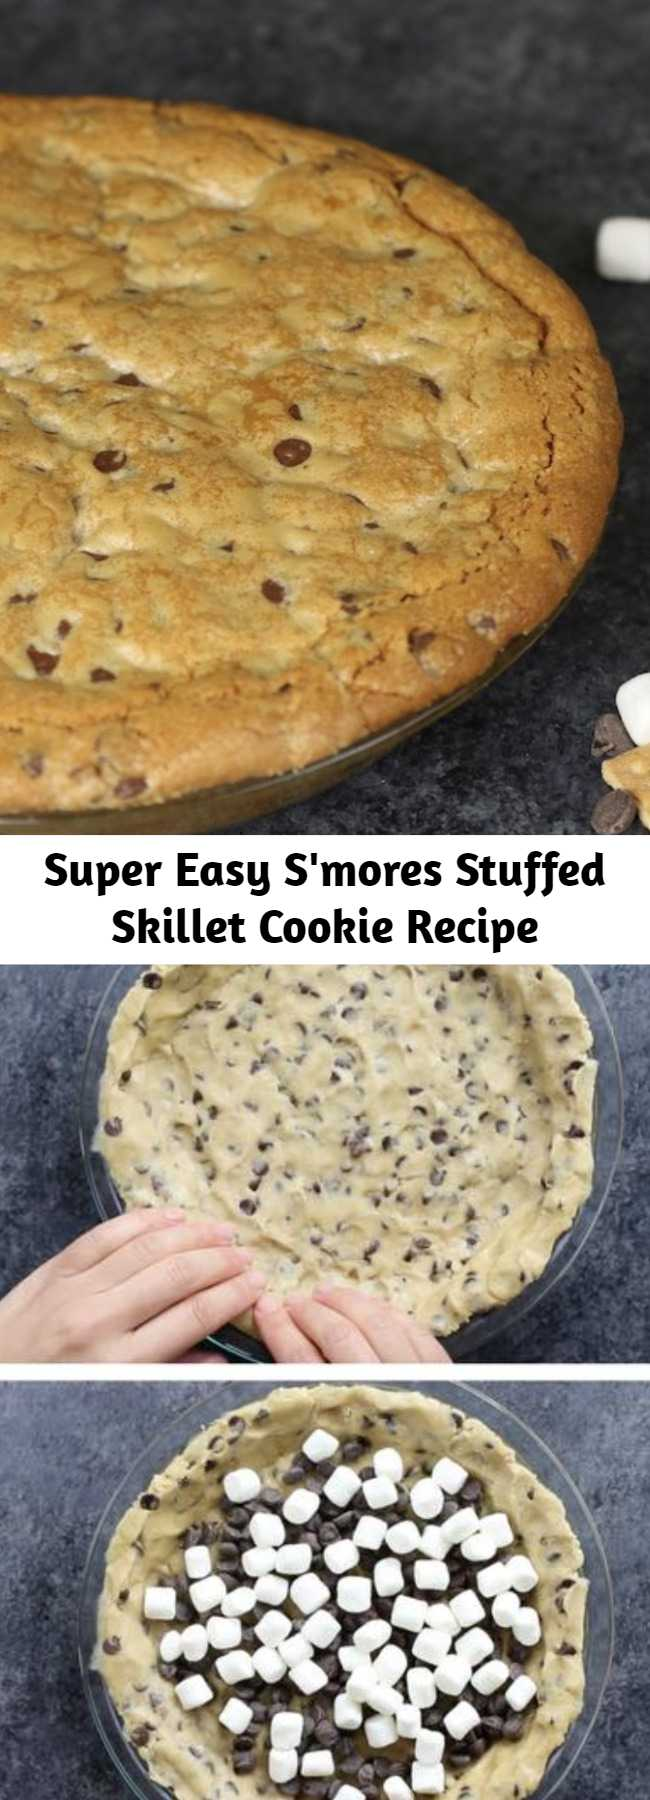 Super Easy S'mores Stuffed Skillet Cookie Recipe - This S'mores Stuffed Skillet Cookie is chocolate chip cookie dough stuffed with marshmallows, chocolate chips and graham crackers. It's a drool-worthy dessert that's perfect for a party and sharing with your best friends!